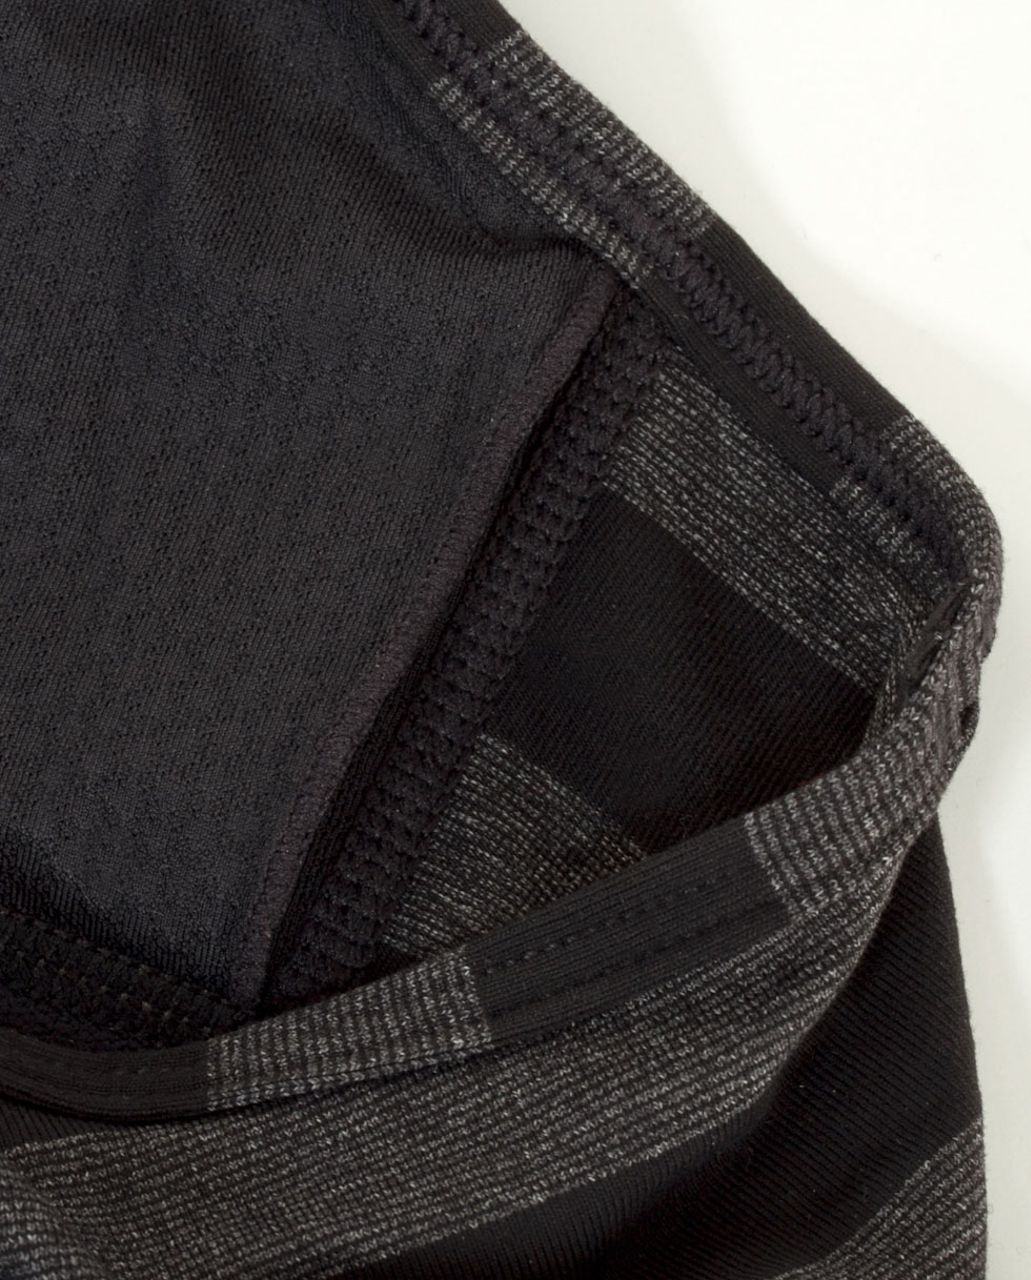 Lululemon No Limit Tank - Black /  Black Black Micro Macro Stripe